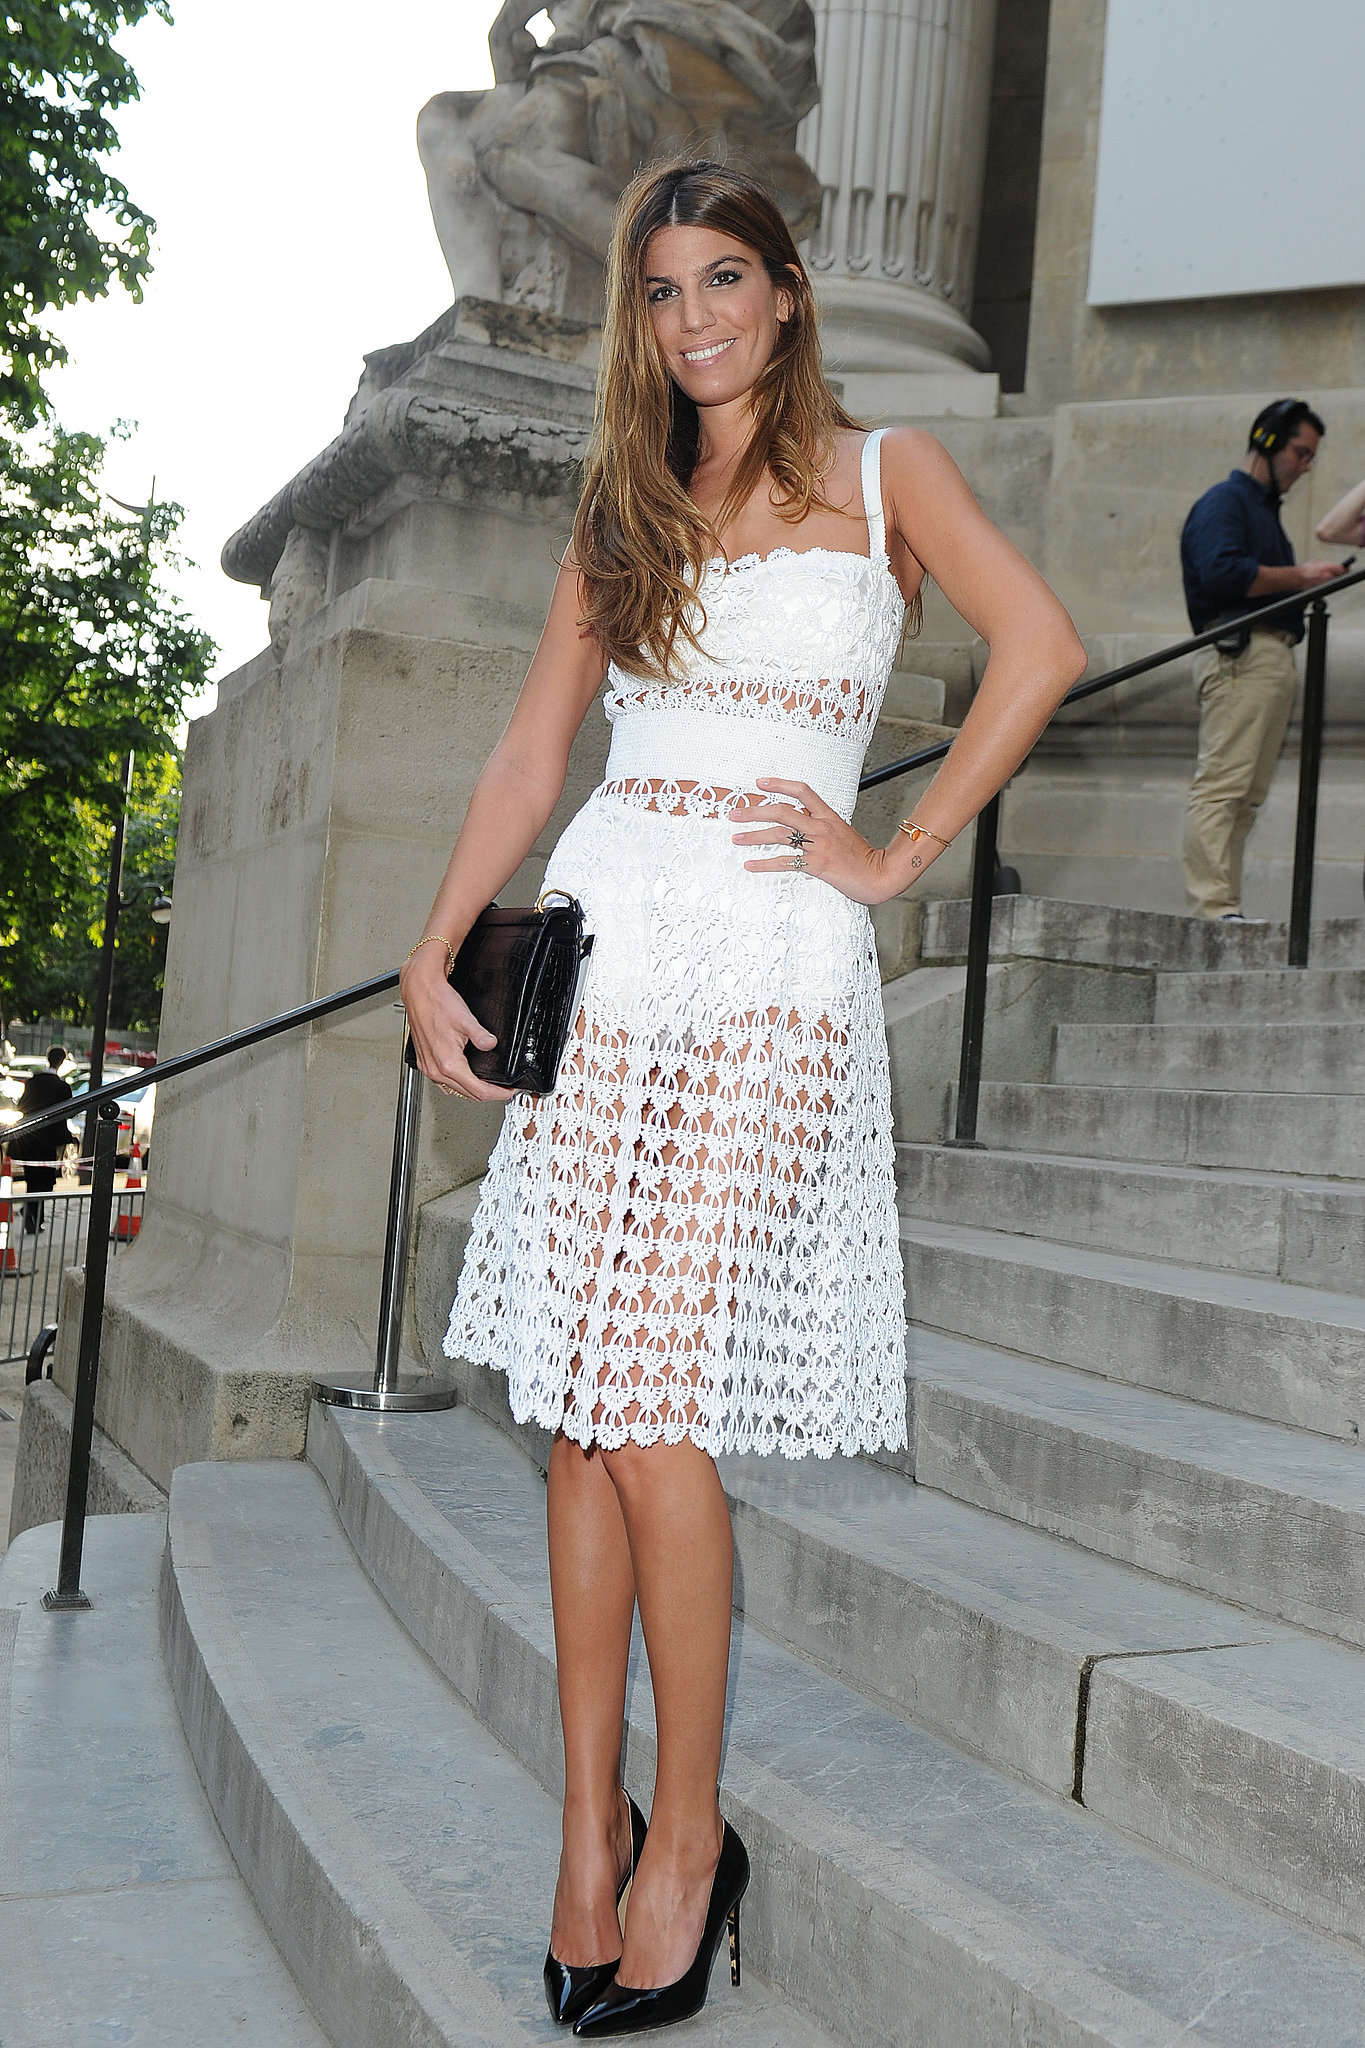 Lacy white fabric is spot-on for a Summer afternoon. A retro cut with visible bloomers felt sneakily sexy outside the Giambattista Valli show.